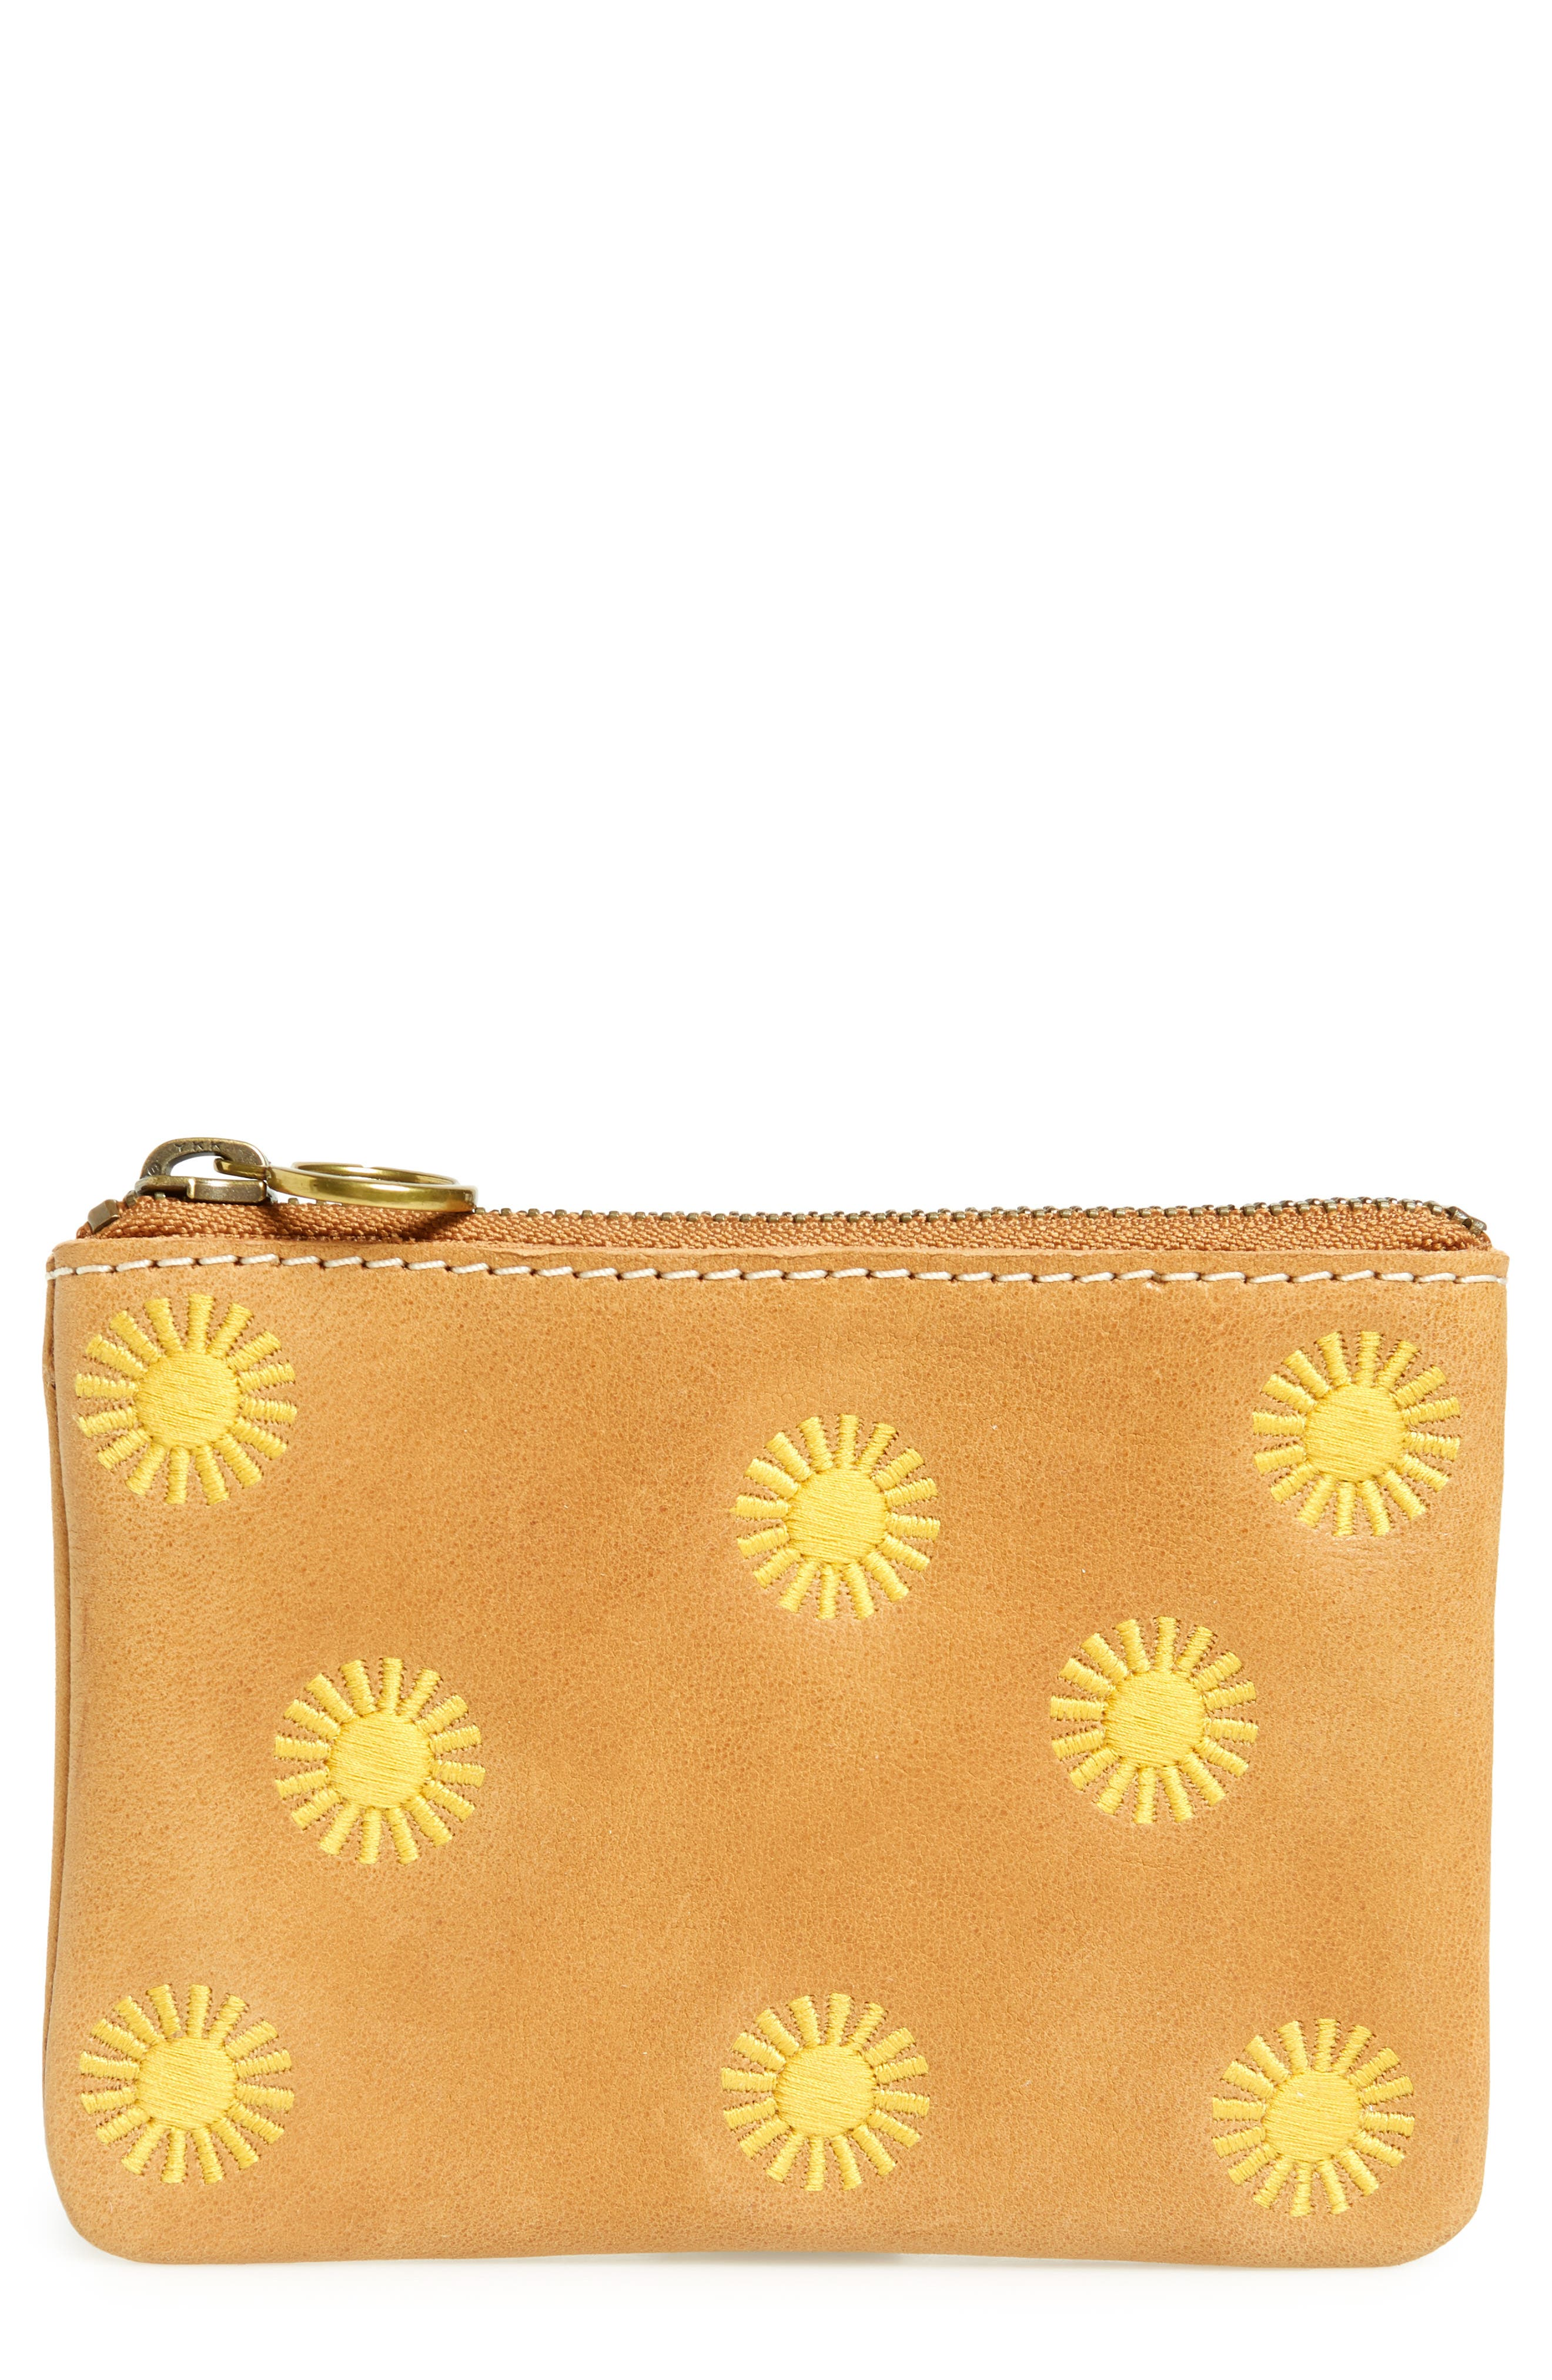 Sun Embroidered Small Flat Zip Pouch,                             Main thumbnail 1, color,                             Burnished Caramel